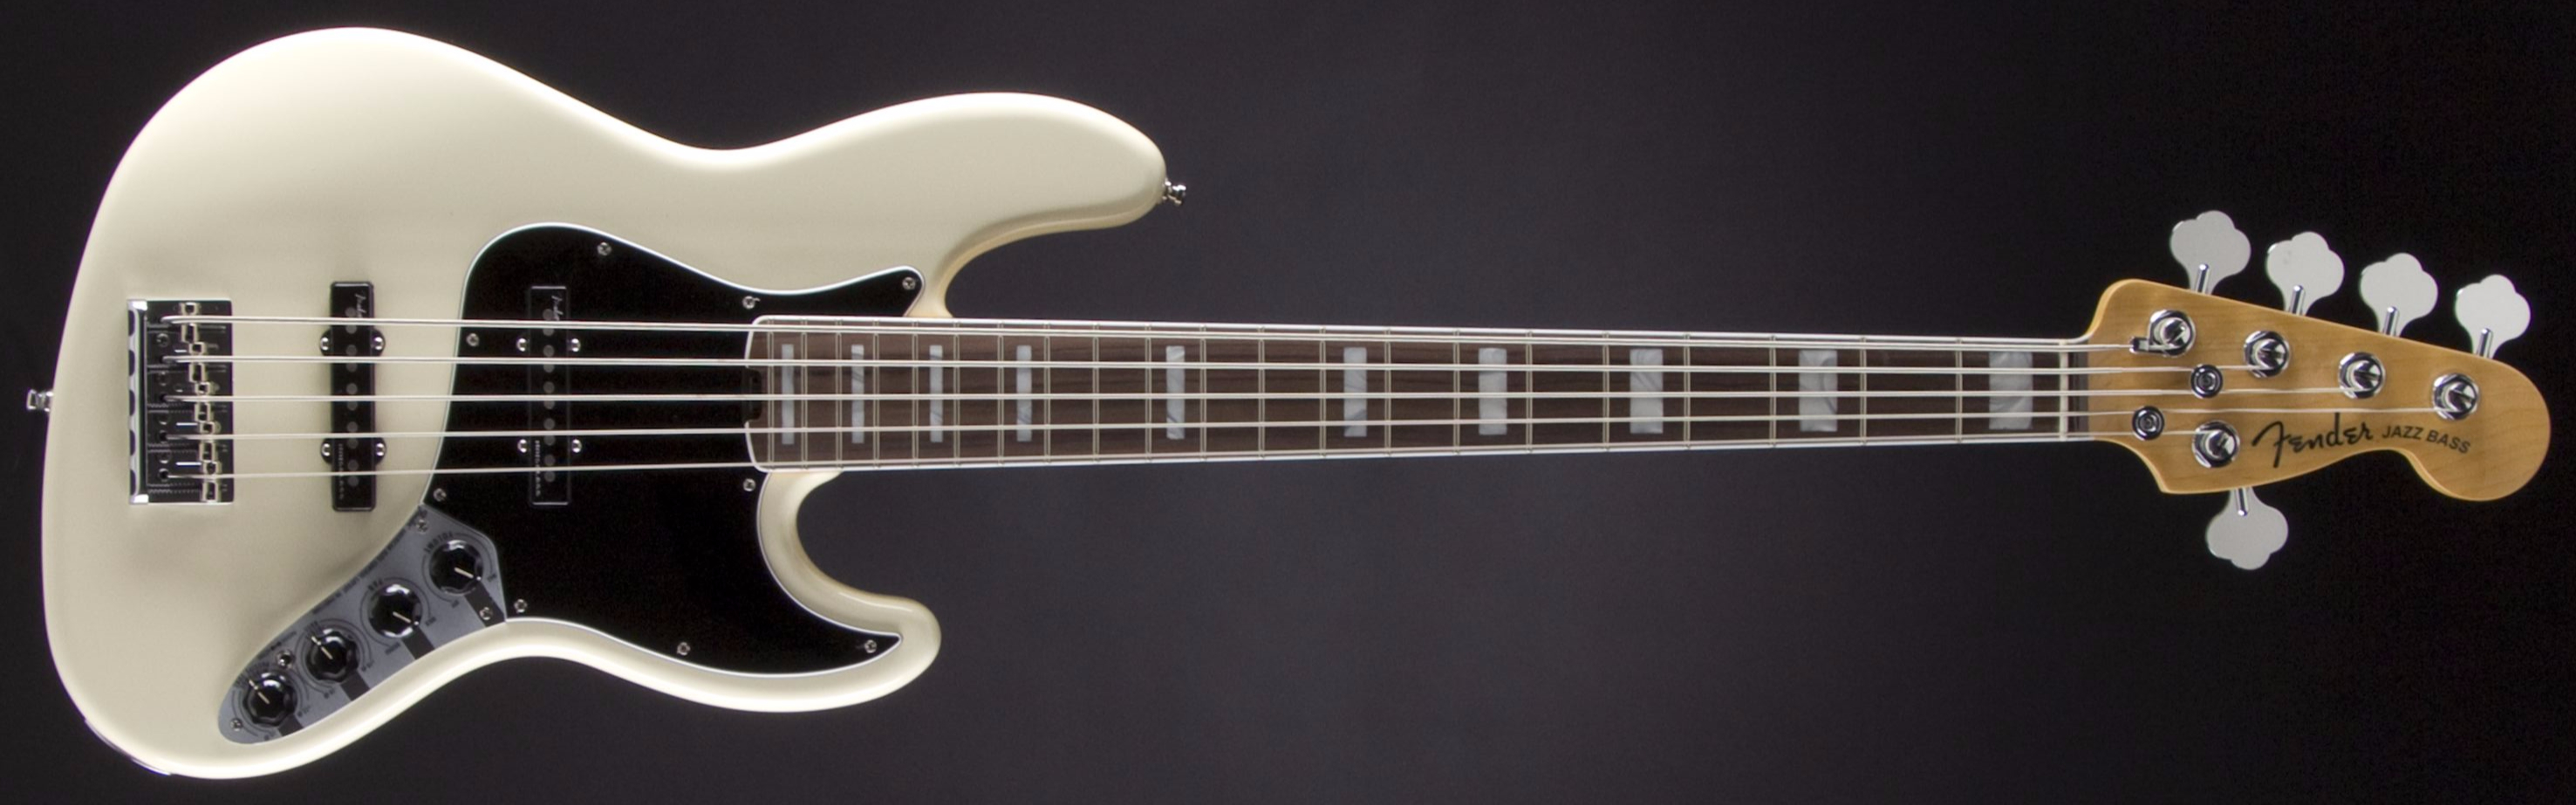 FENDER American Elite Jazz Bass V Olympic White